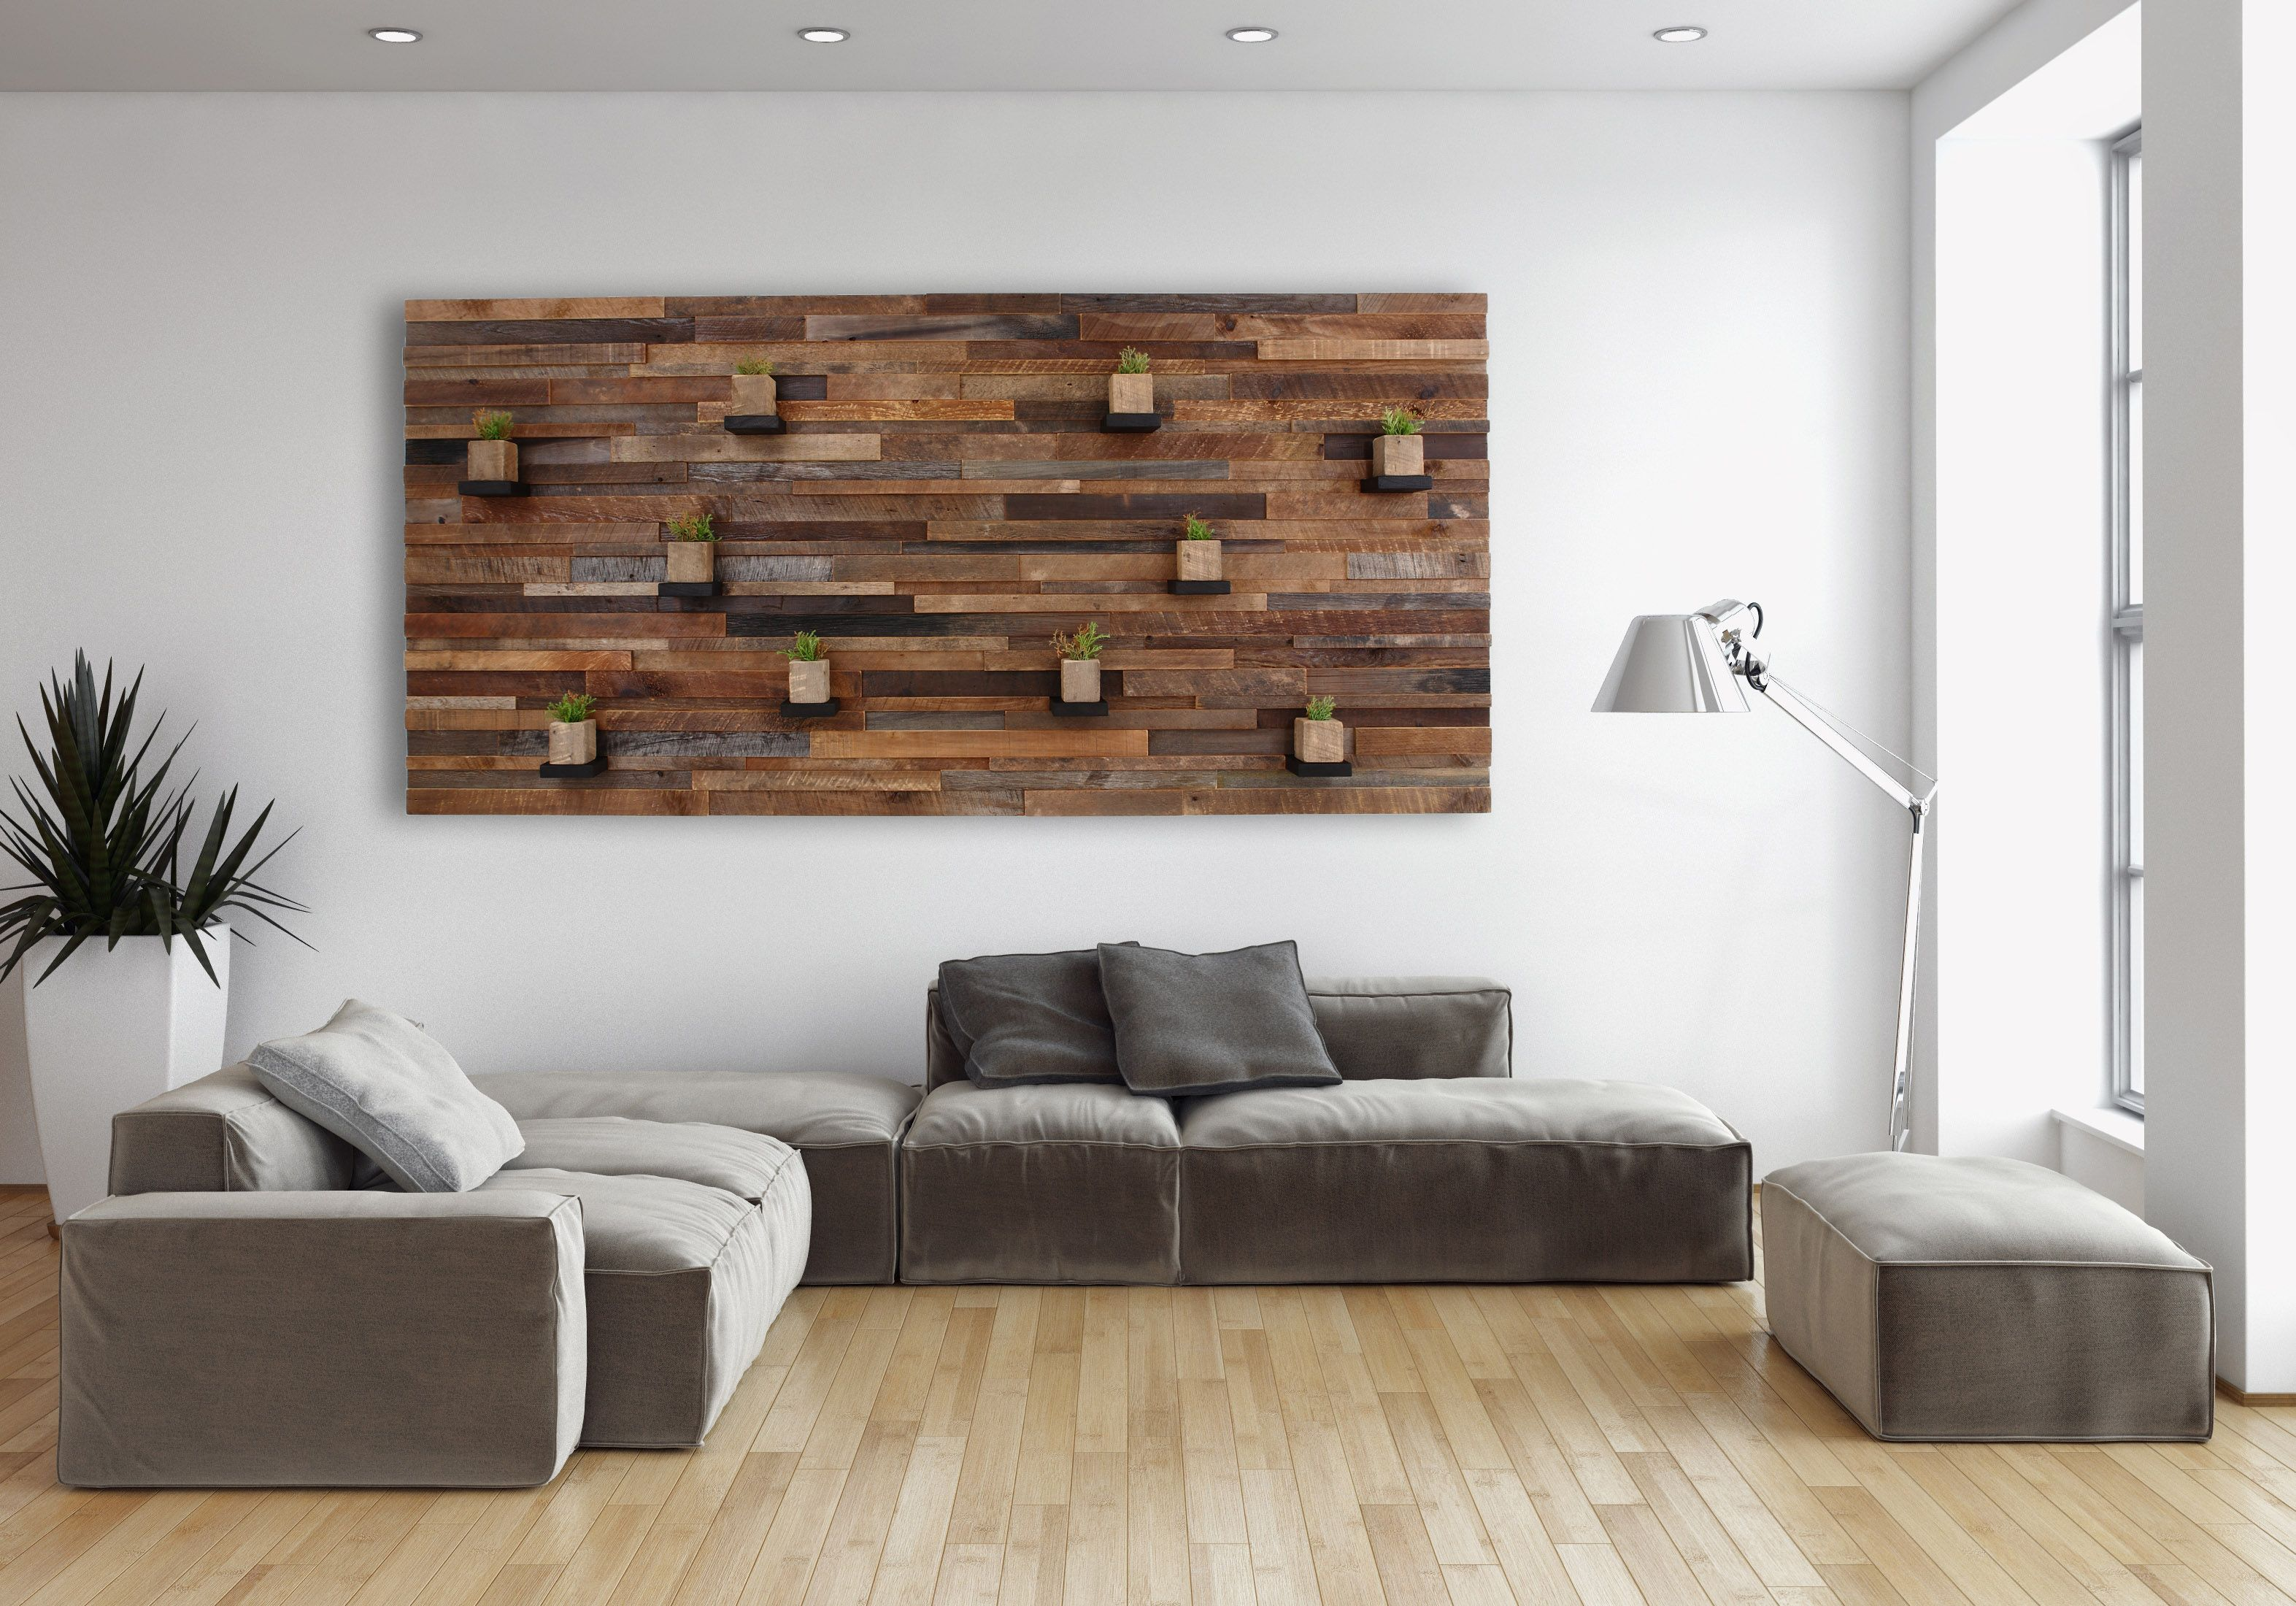 Wooden Wall Art For Sale Best Hand Made Wood Wall Art With Floating Wood Shelves 84 Design Decoration